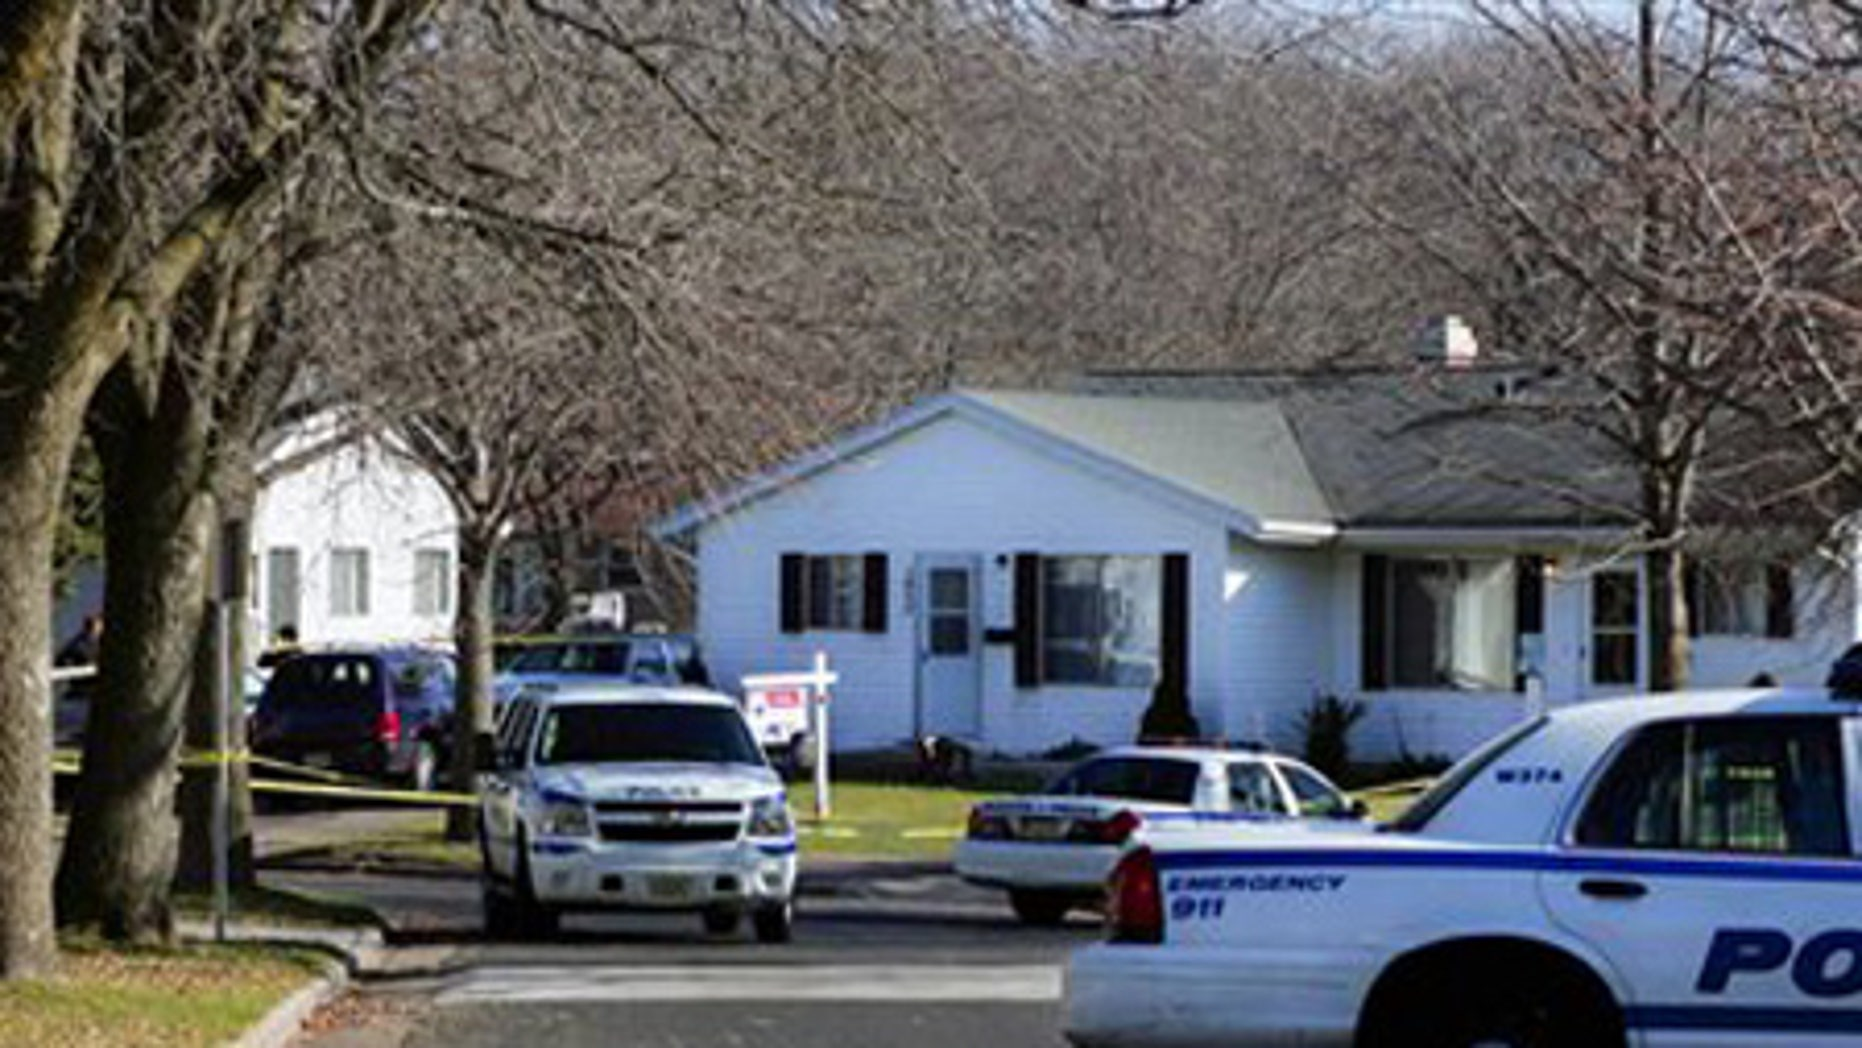 Nov. 28: Police block the intersection of Jacob's Way and Prairie Road in Madiison, Wis. for an investigation of a shooting that injured four.